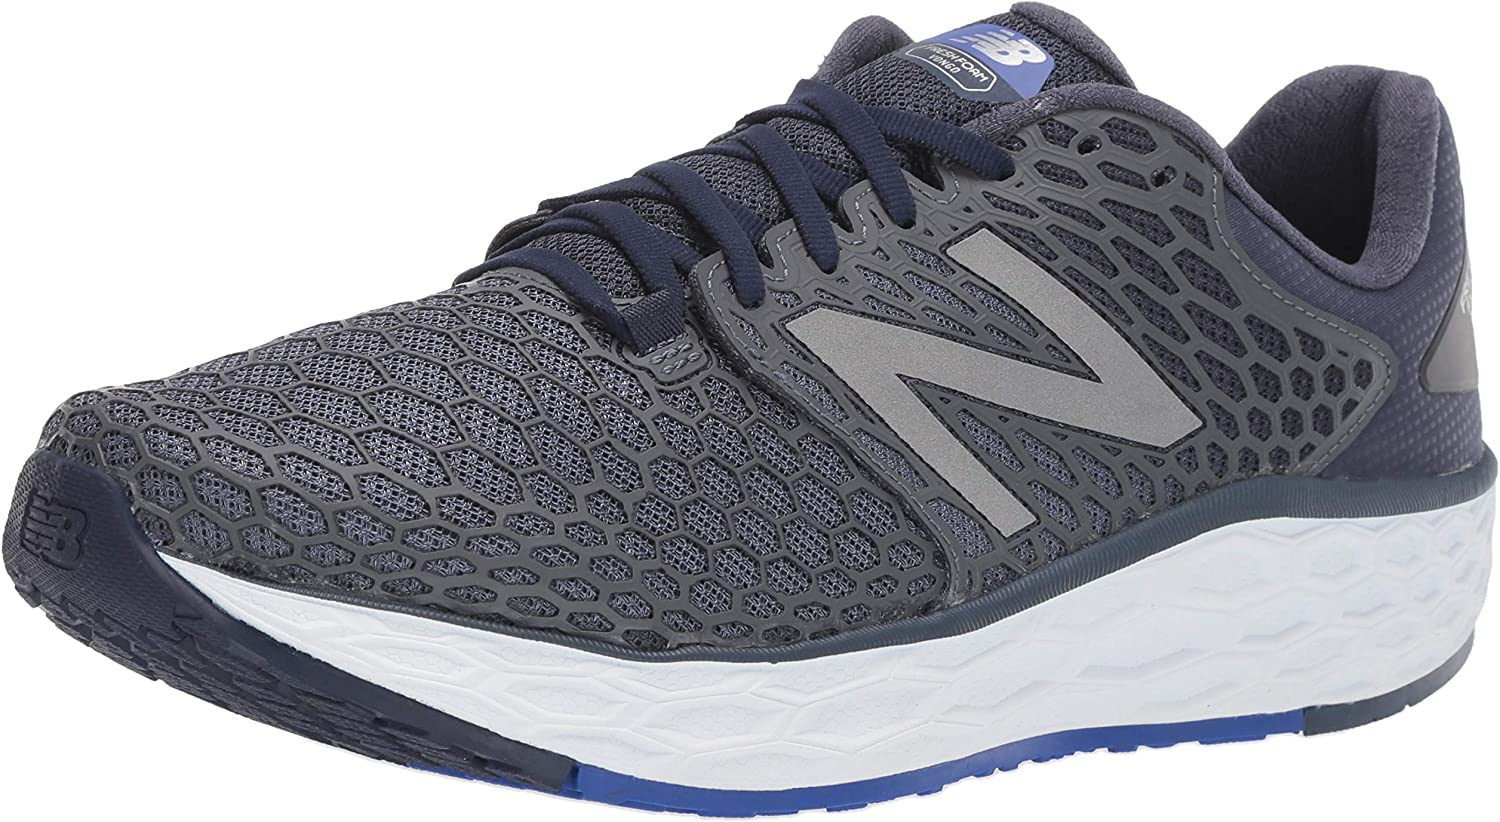 New Balance Fresh Foam Vongo V3, Zapatillas de Running para Hombre: Amazon.es: Zapatos y complementos